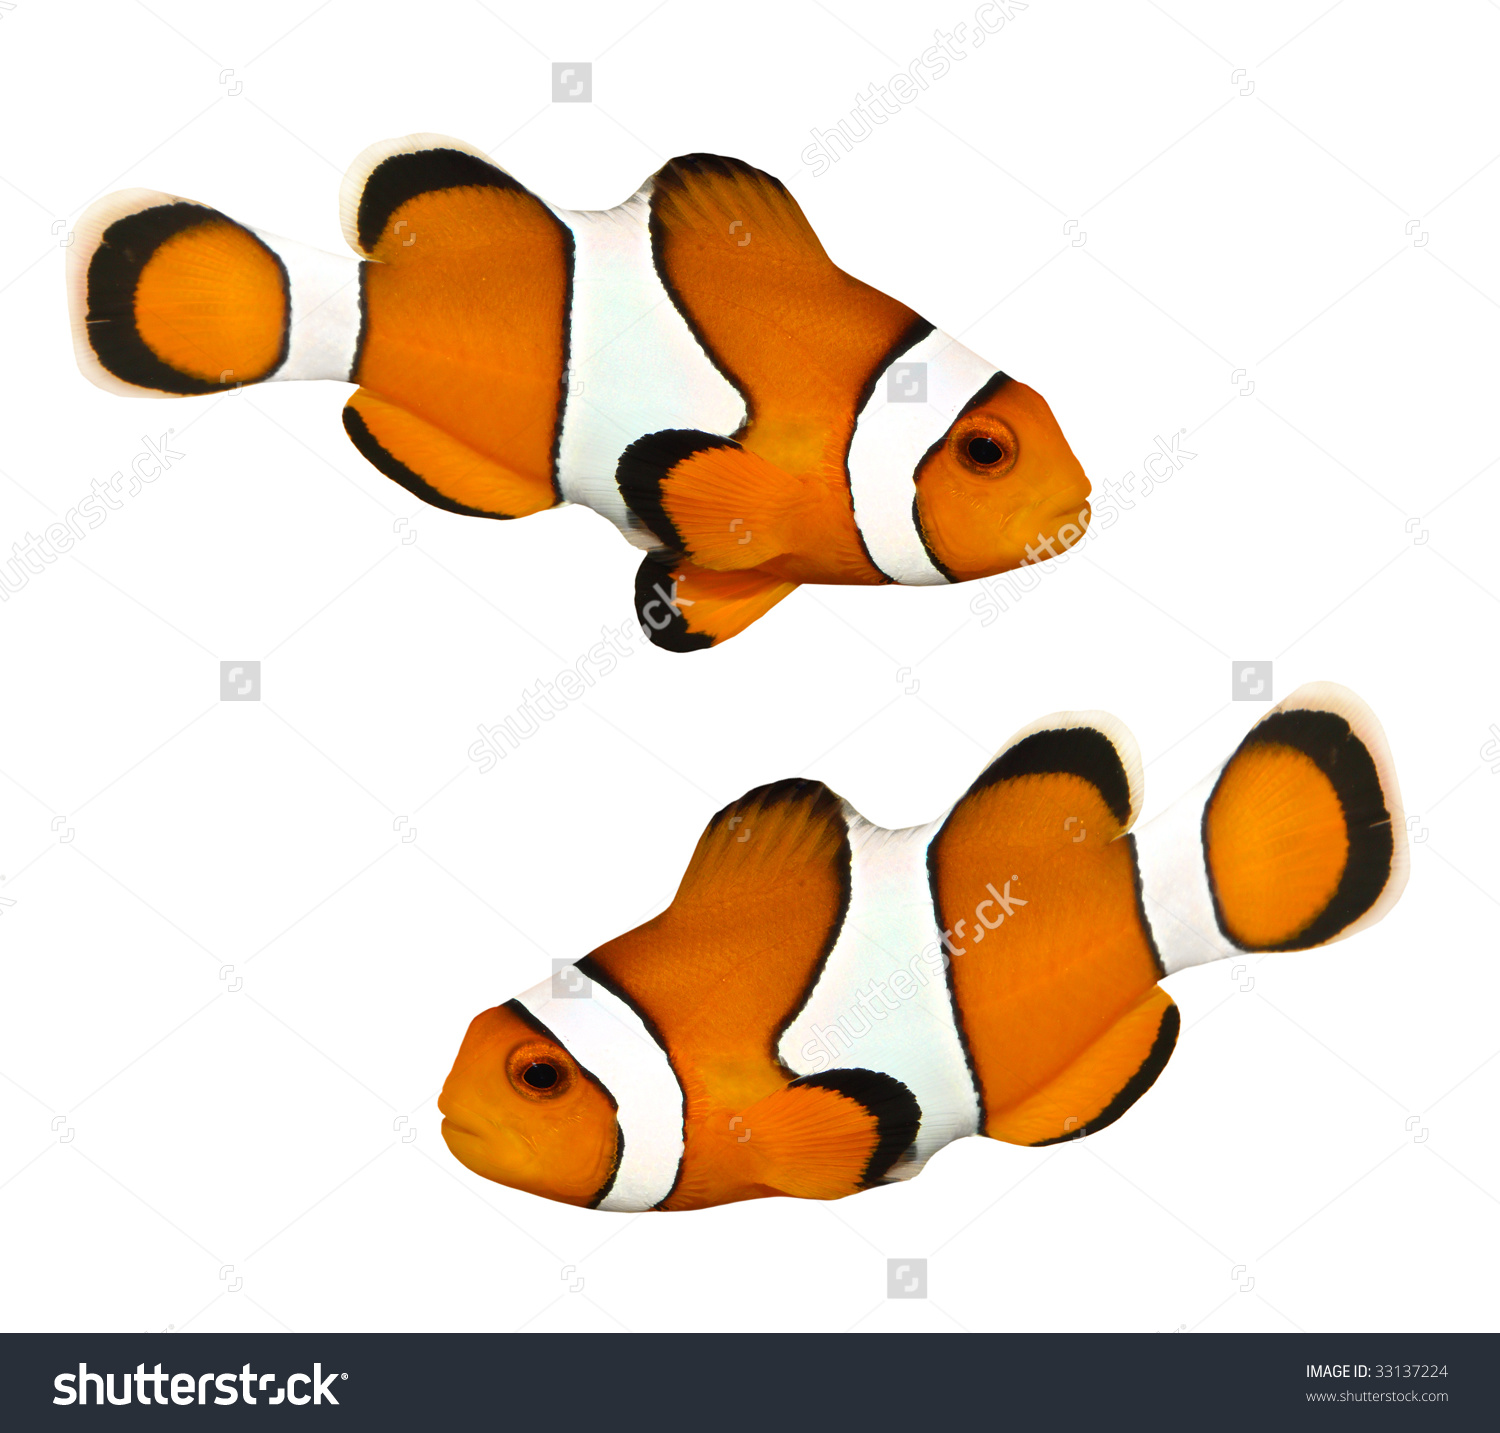 Tropical Reef Fish Clownfish Amphiprion Ocellaris Stock Photo.